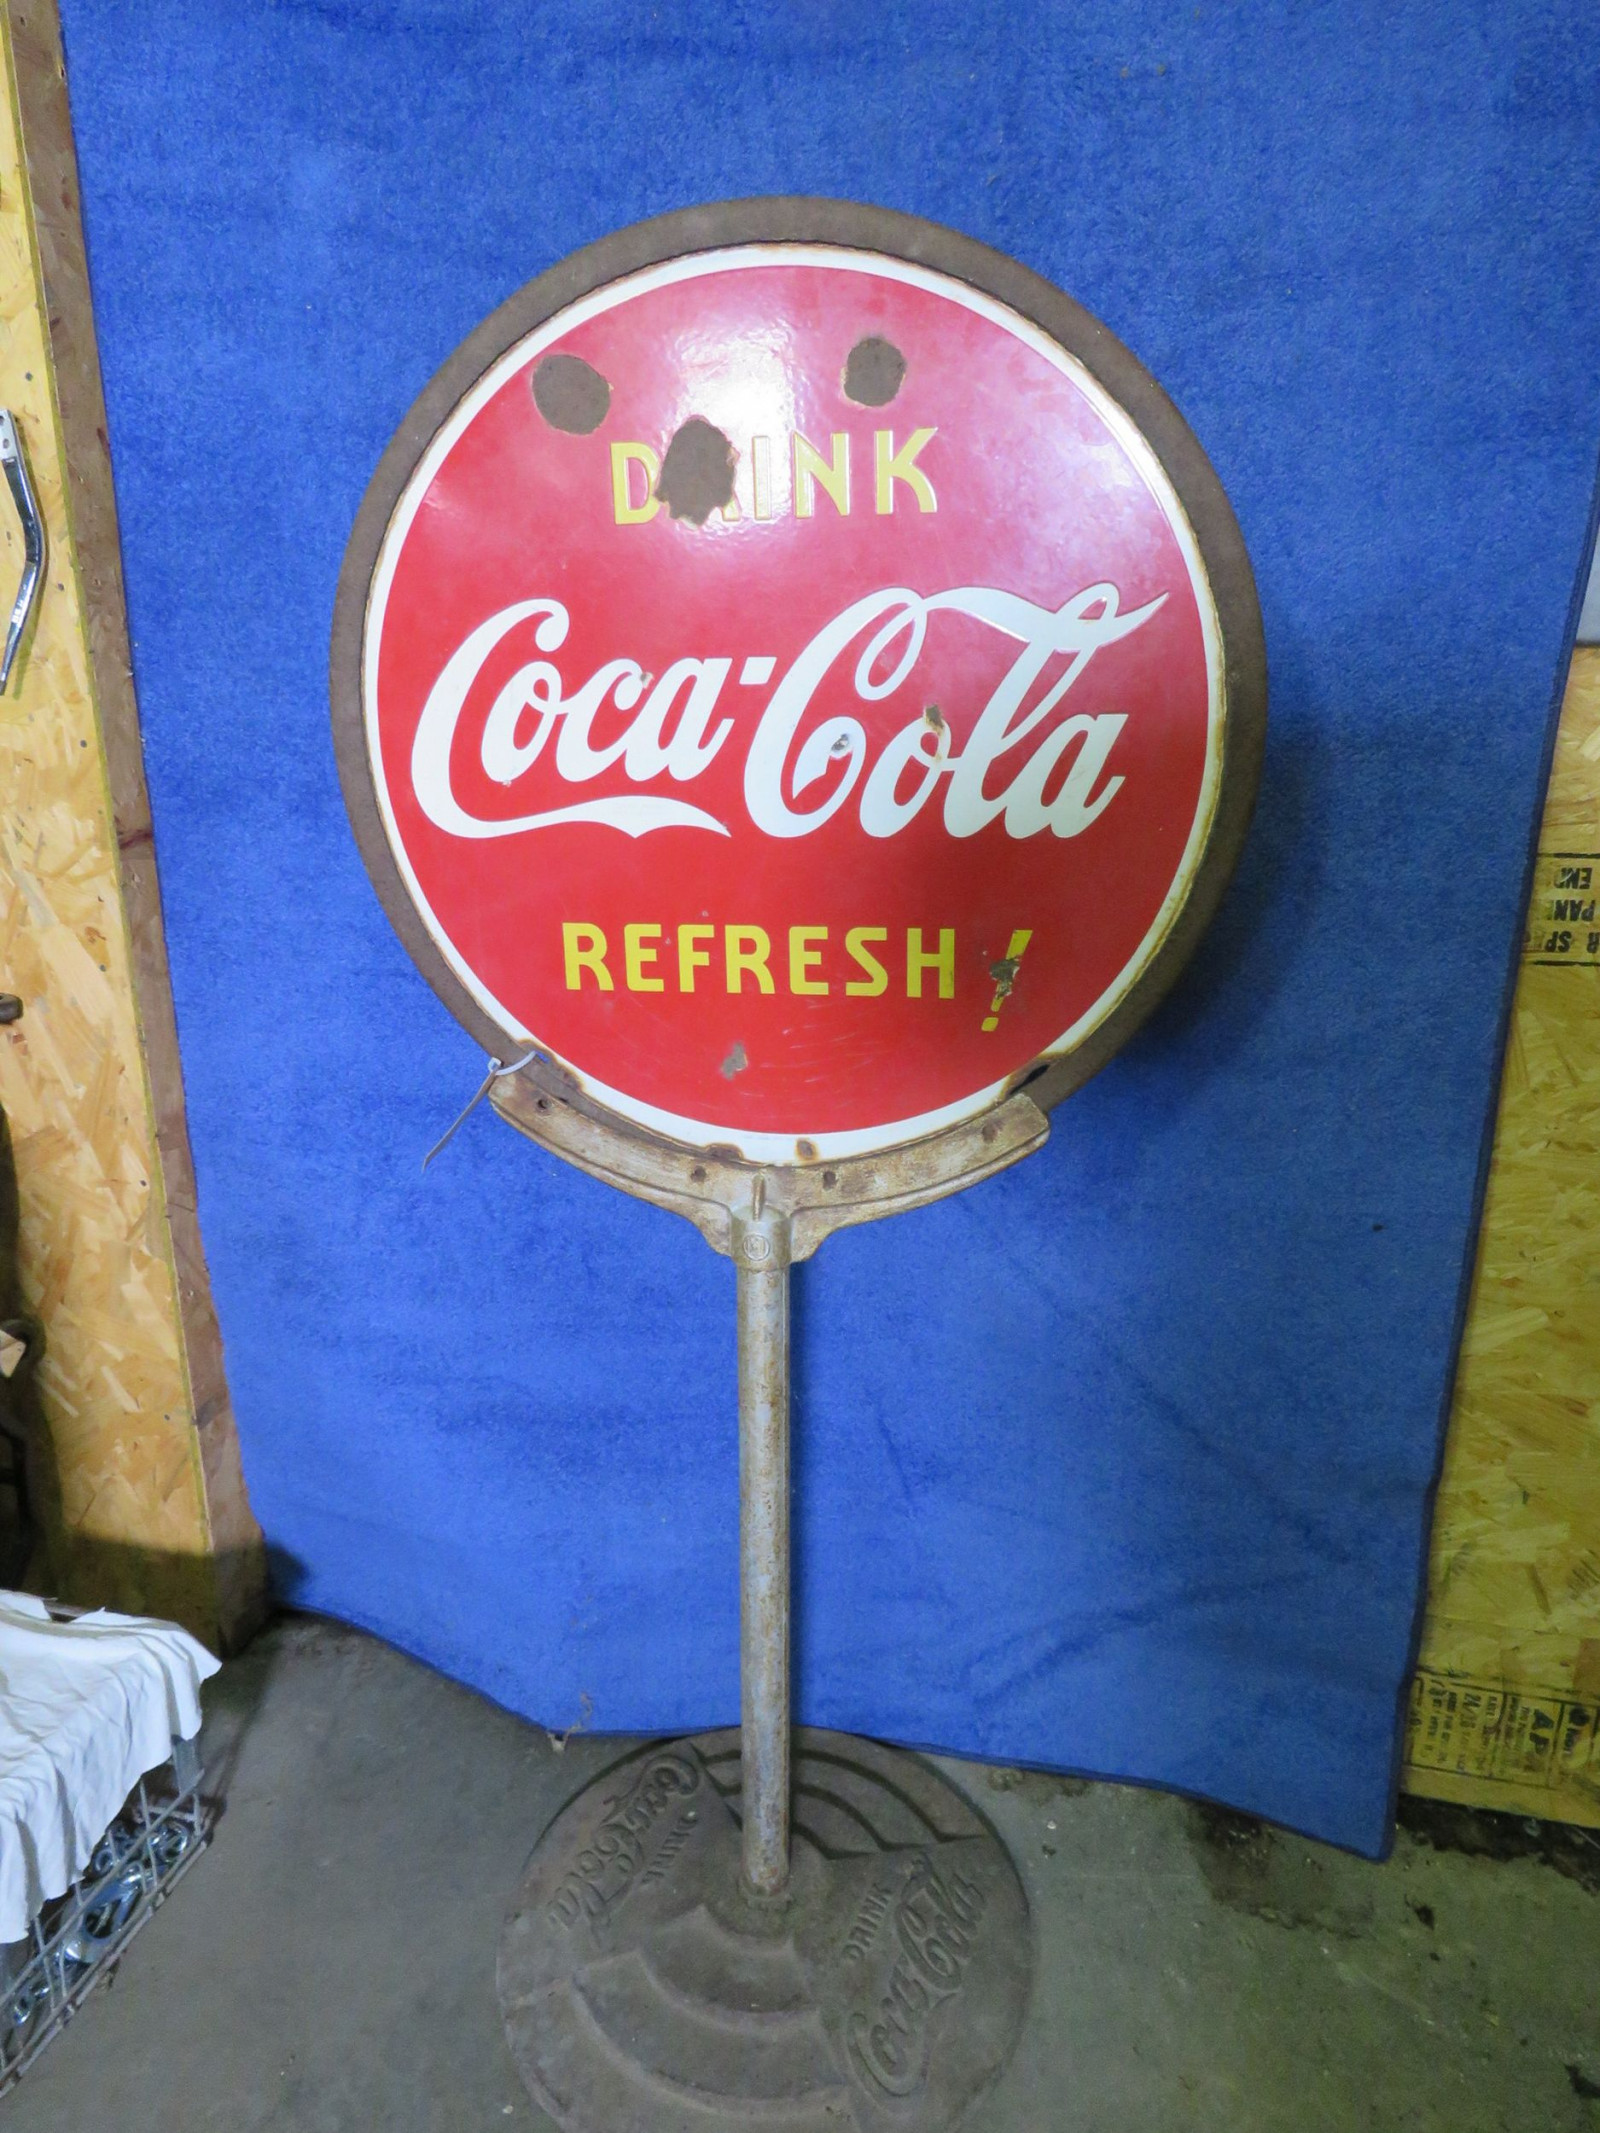 Coca Cola Porcelain DS Lollipop Sign - Image 1